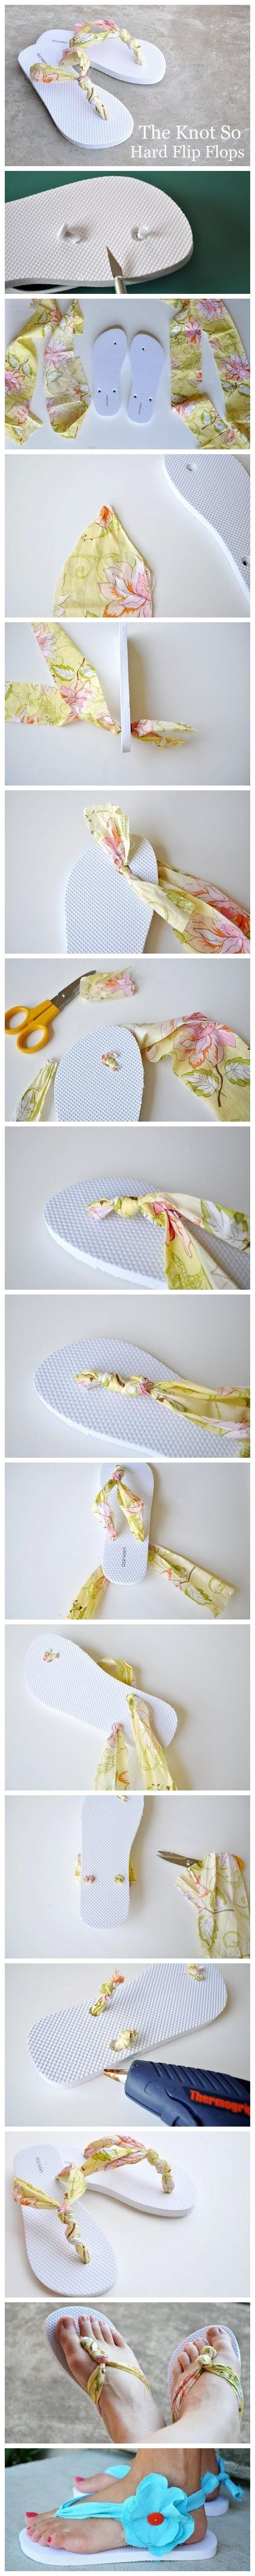 Cool idea to upcycle everyday summer flip flops. diy crafts www.BlueRainbowDesign.com